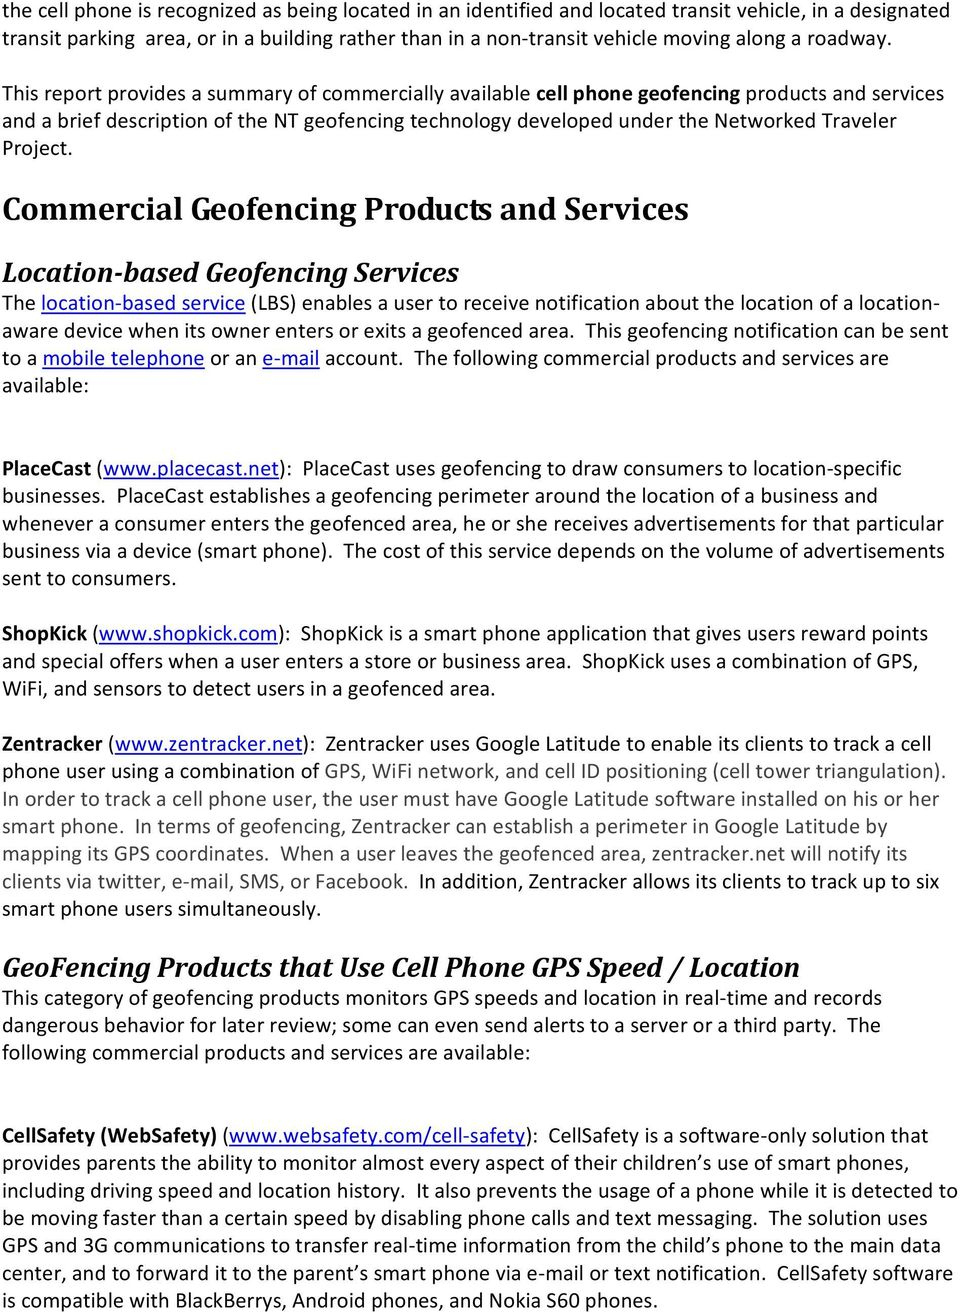 This report provides a summary of commercially available cell phone geofencing products and services and a brief description of the NT geofencing technology developed under the Networked Traveler